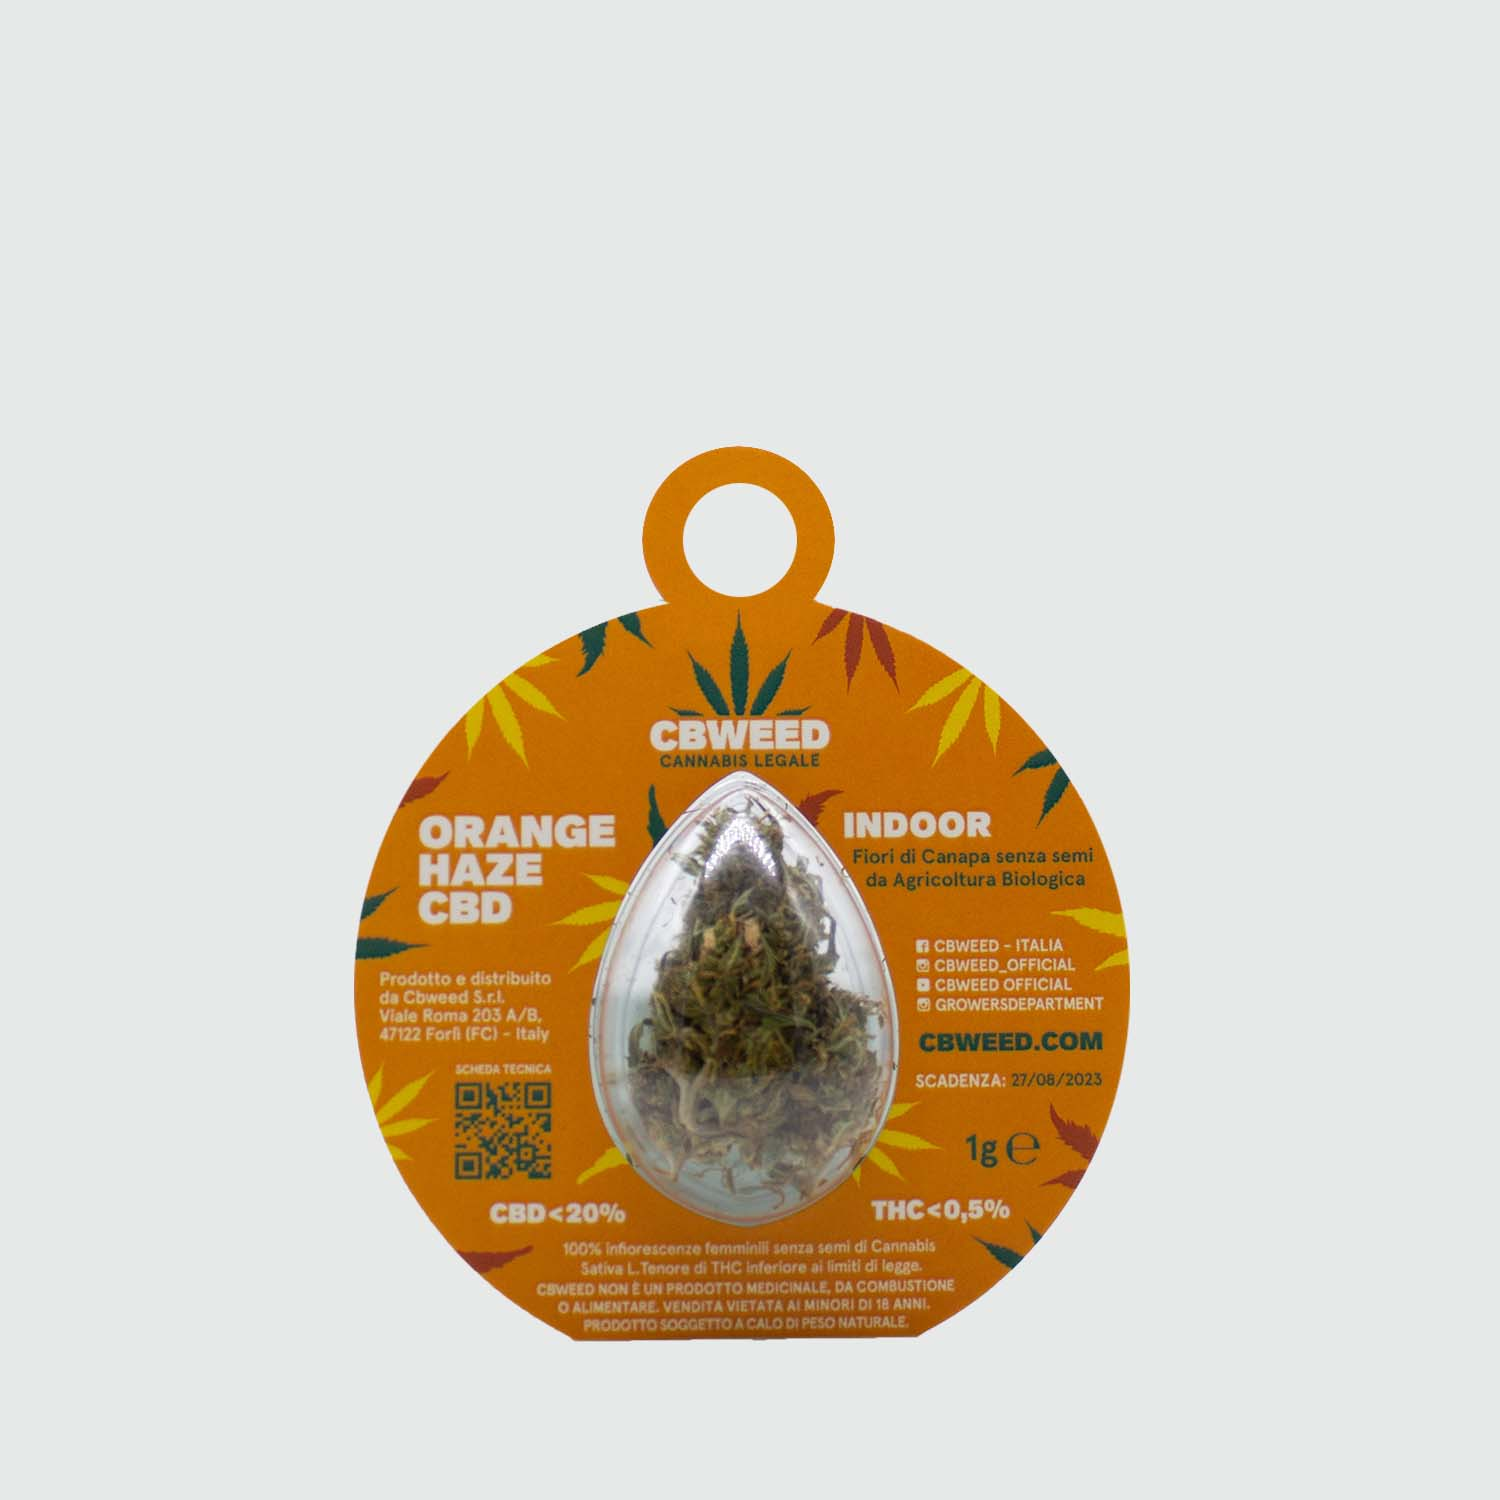 CBWEED-Natale-palline-orange-haze